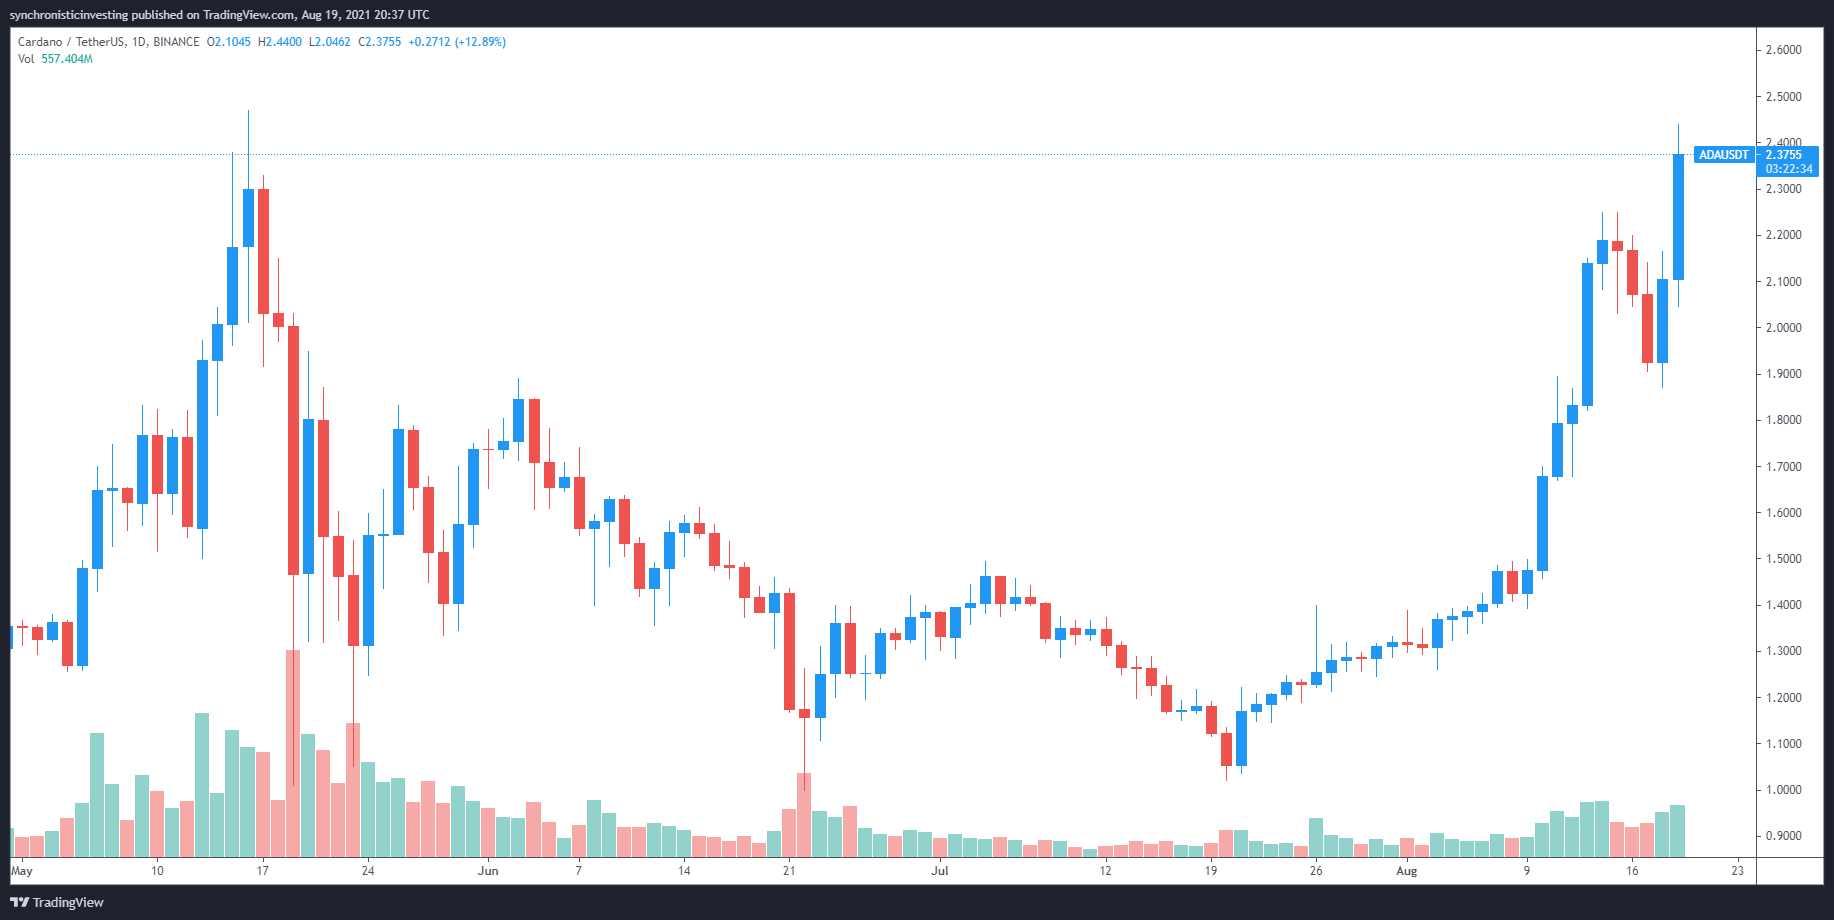 Bullish cup and handle pattern sets Cardano (ADA) price up for a new ATH